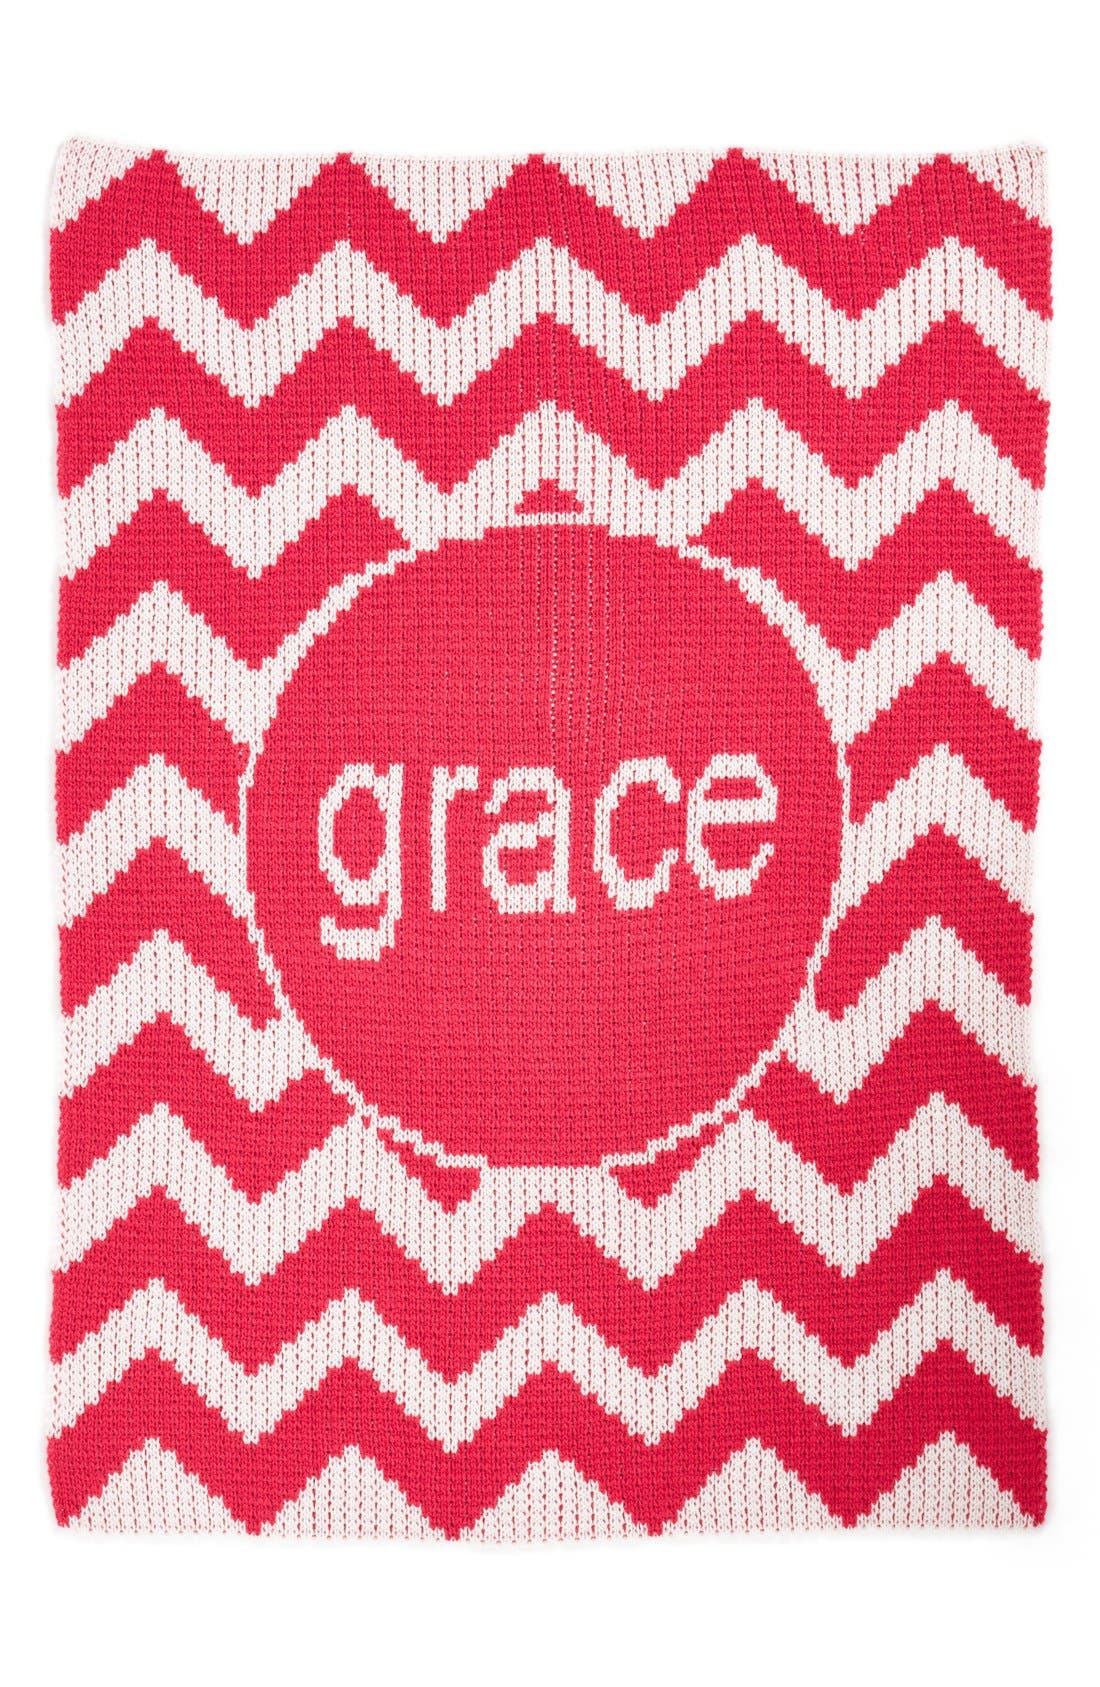 'Chevron - Small' Personalized Blanket,                         Main,                         color, Hot Pink/ White